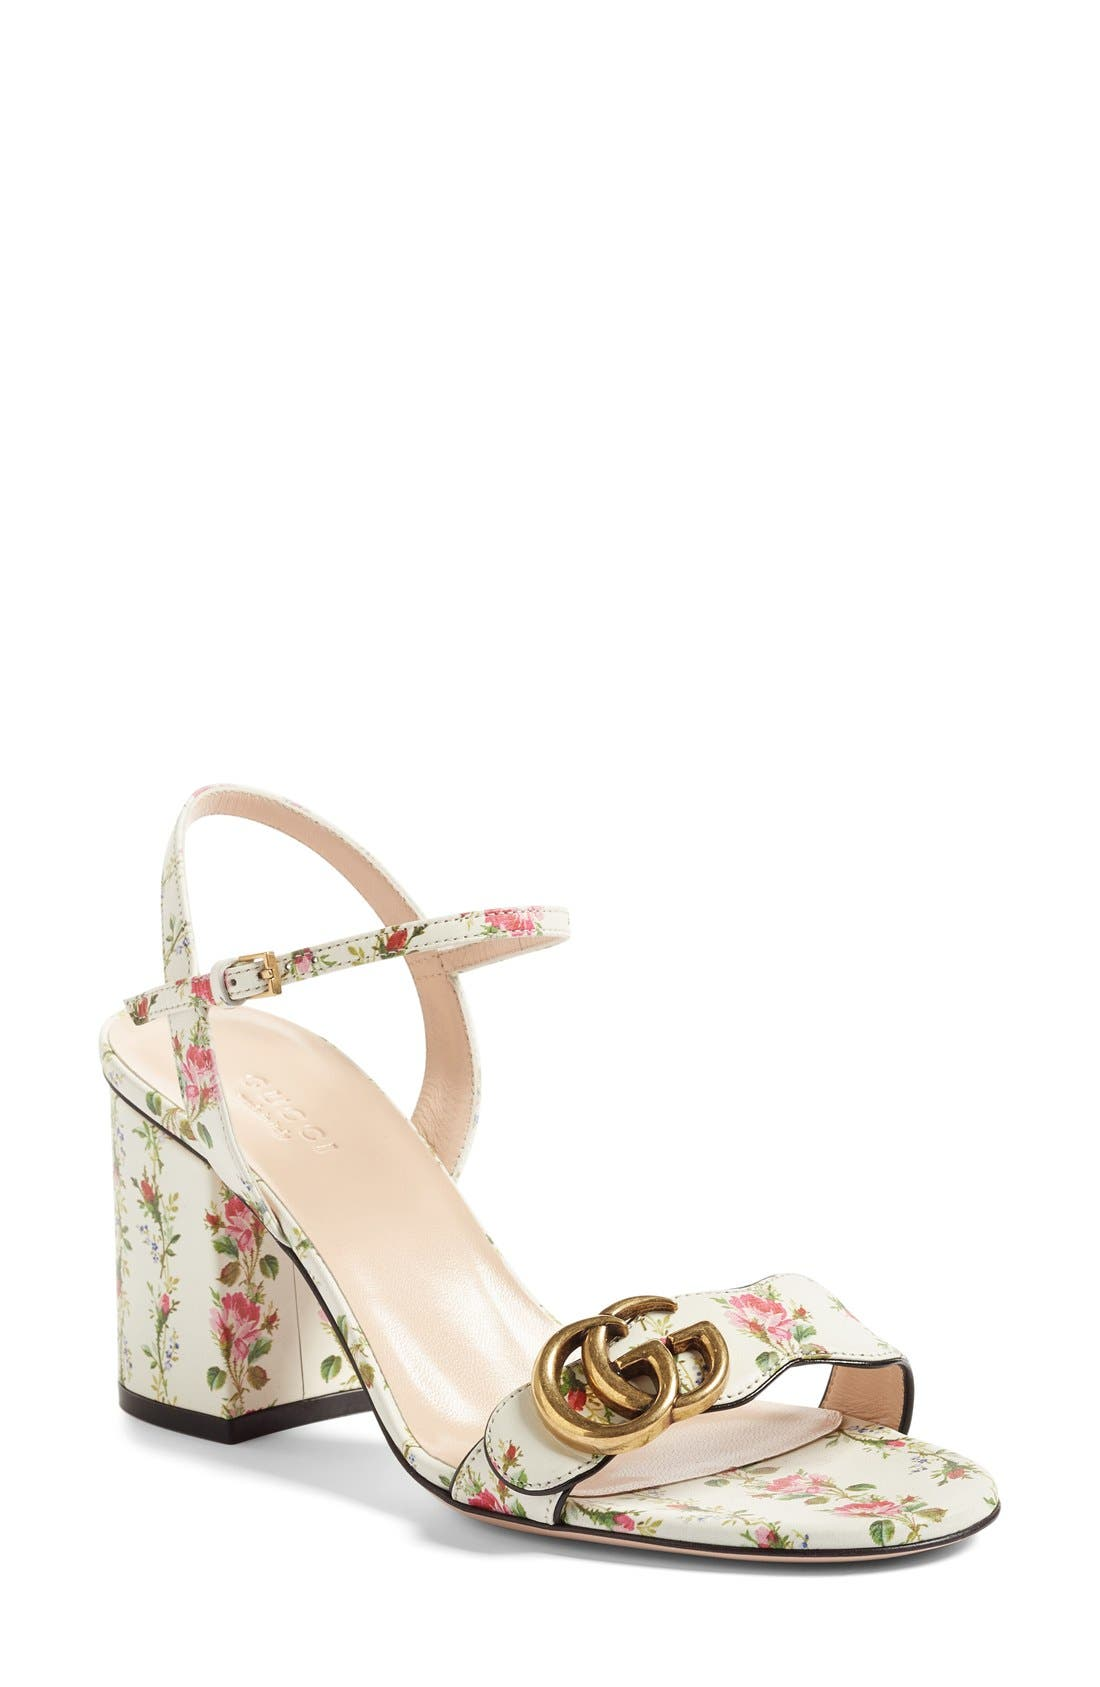 GG Marmont Block Heel Sandal,                         Main,                         color, 100